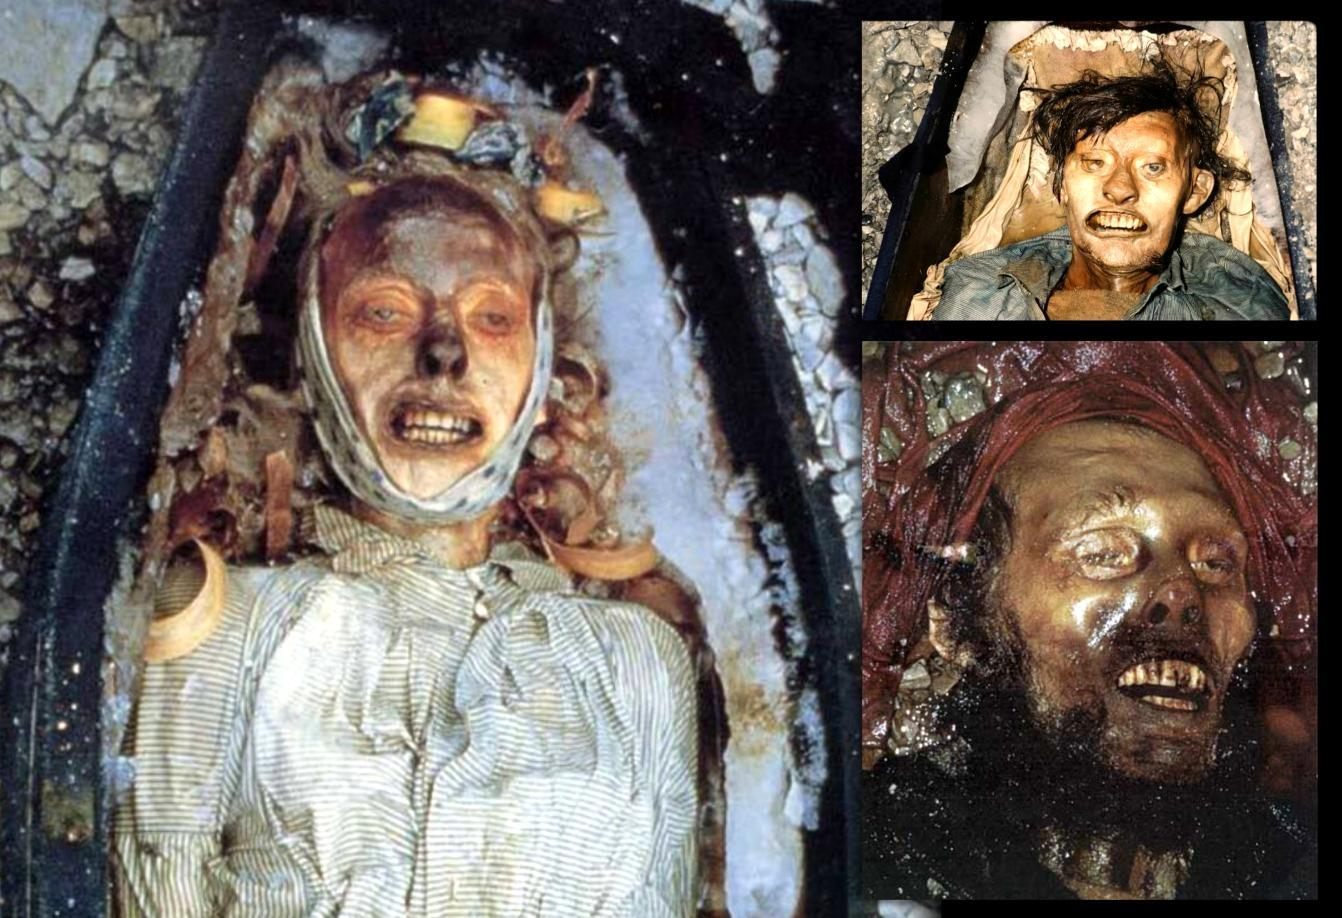 21 incredibly well-preserved human bodies that survived the ages astonishingly 7